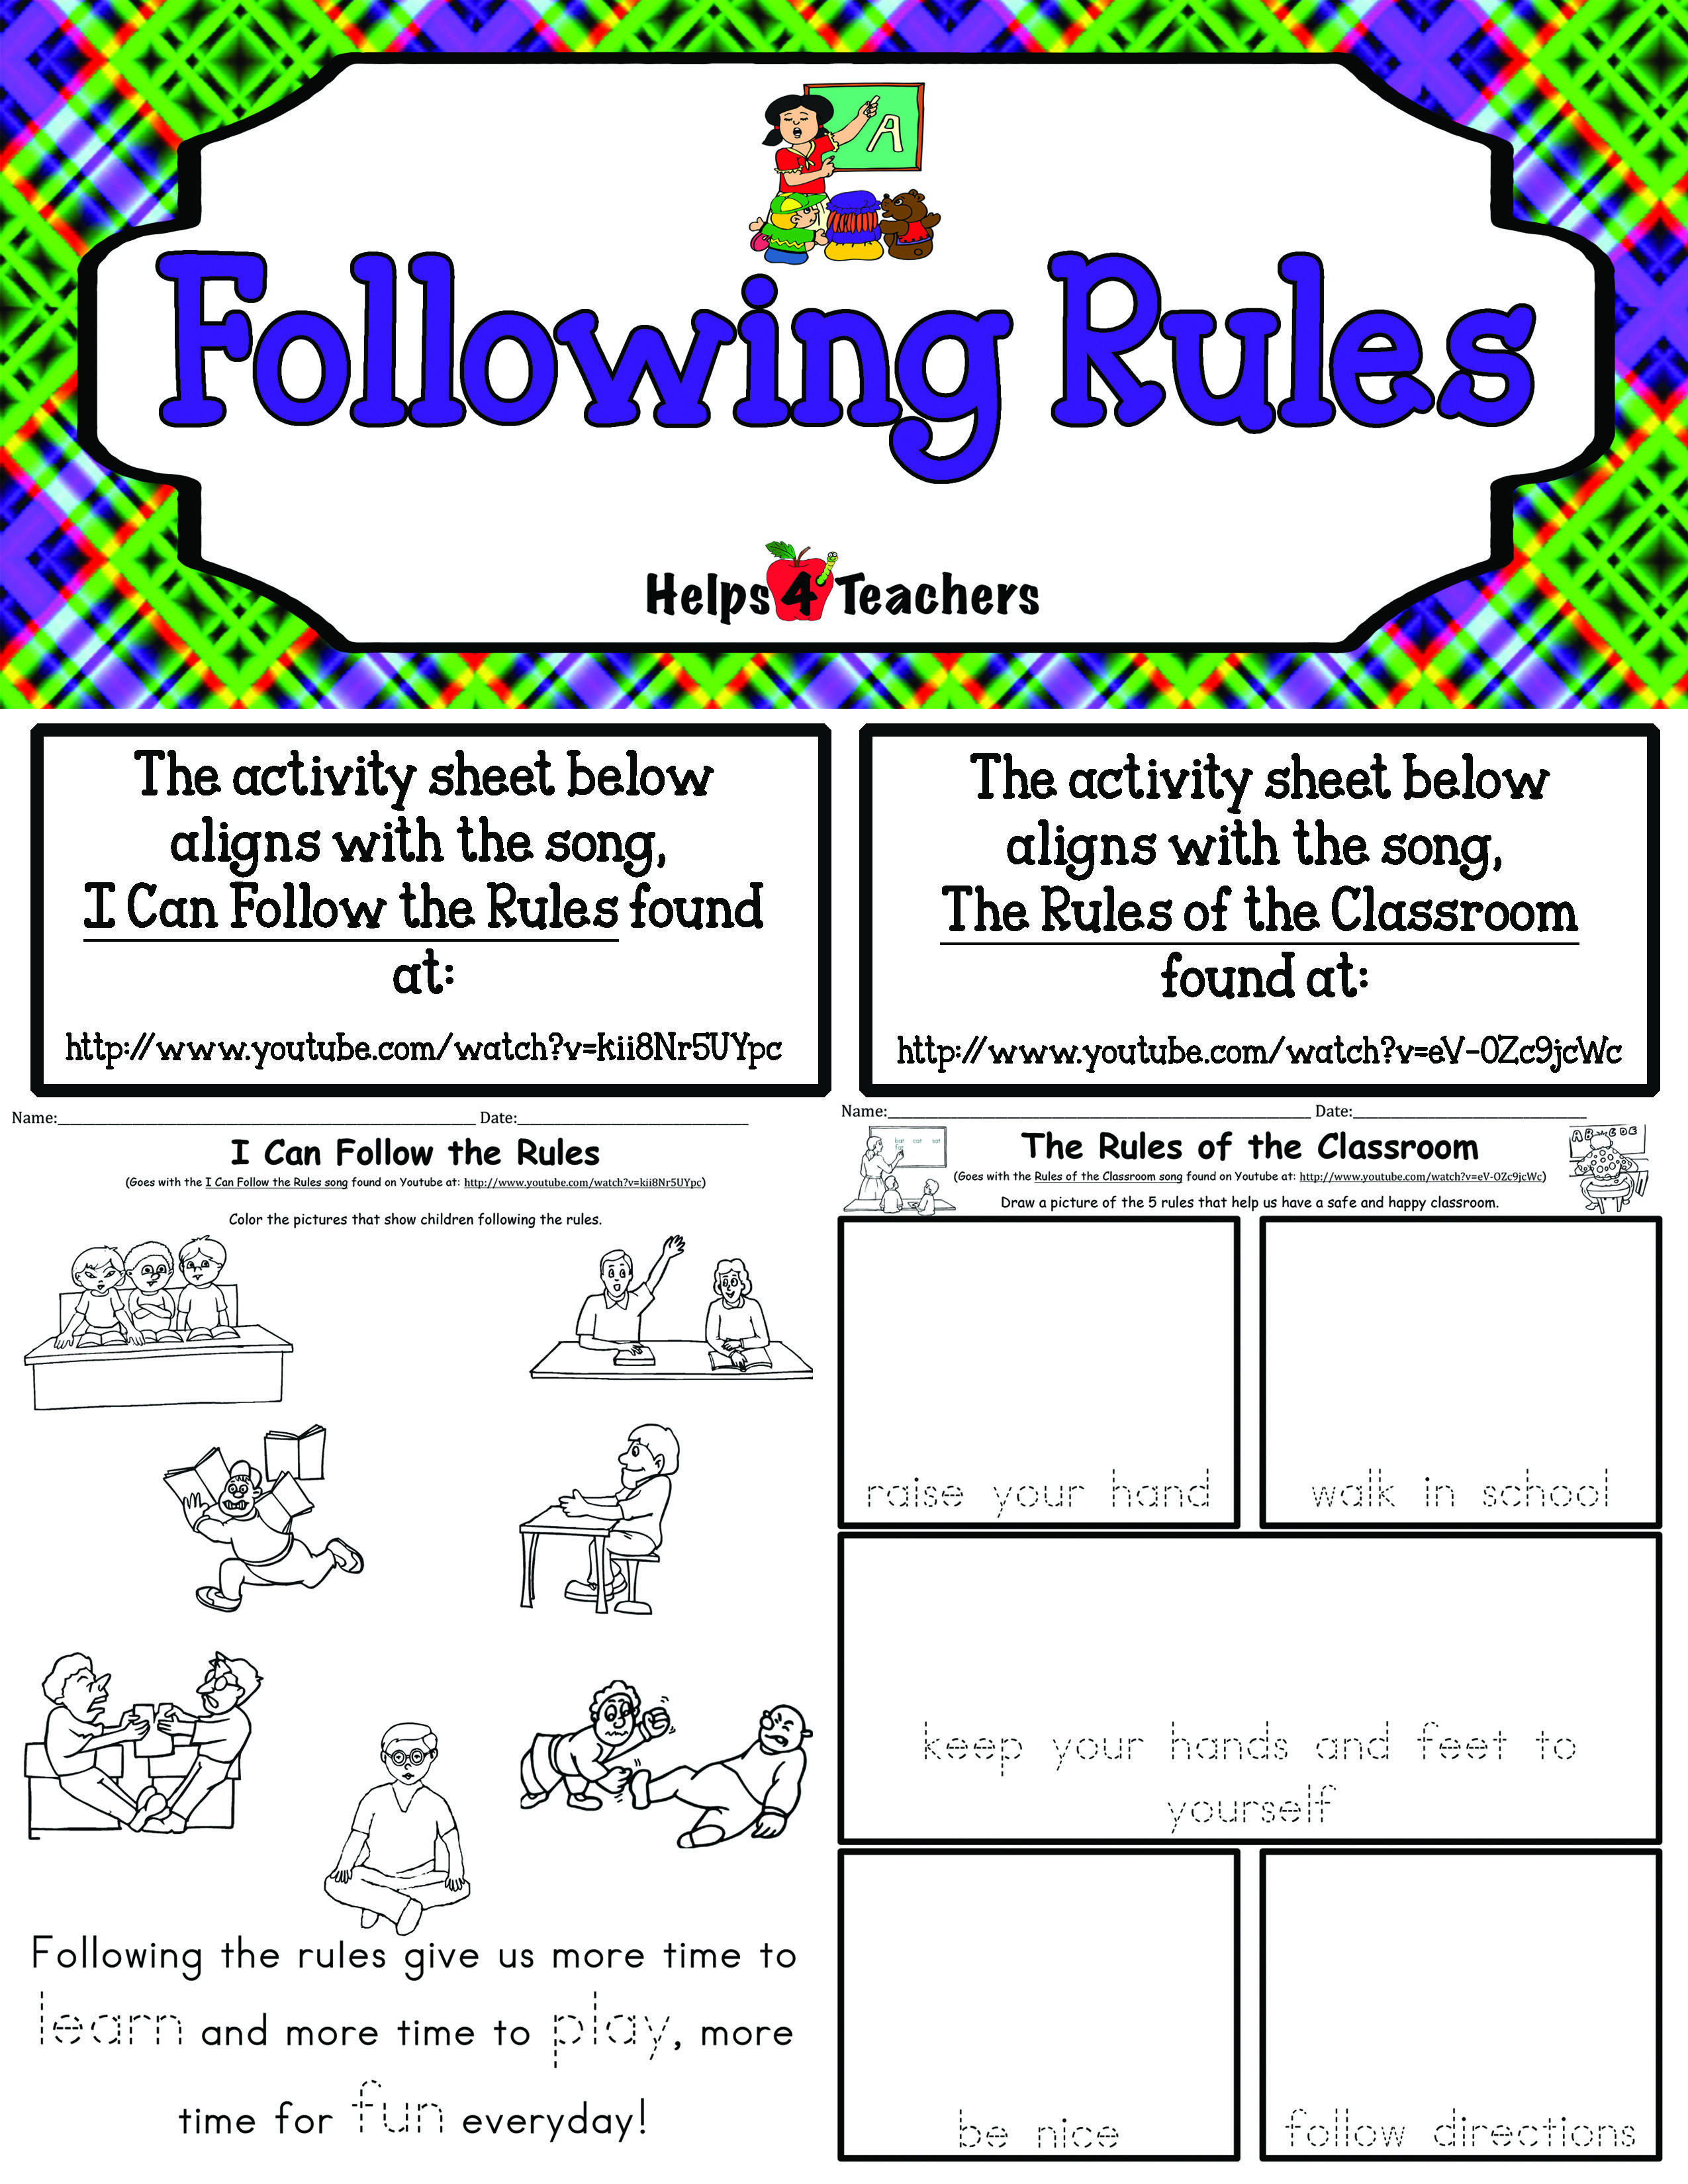 medium resolution of Following Classroom Rules Worksheet   Printable Worksheets and Activities  for Teachers